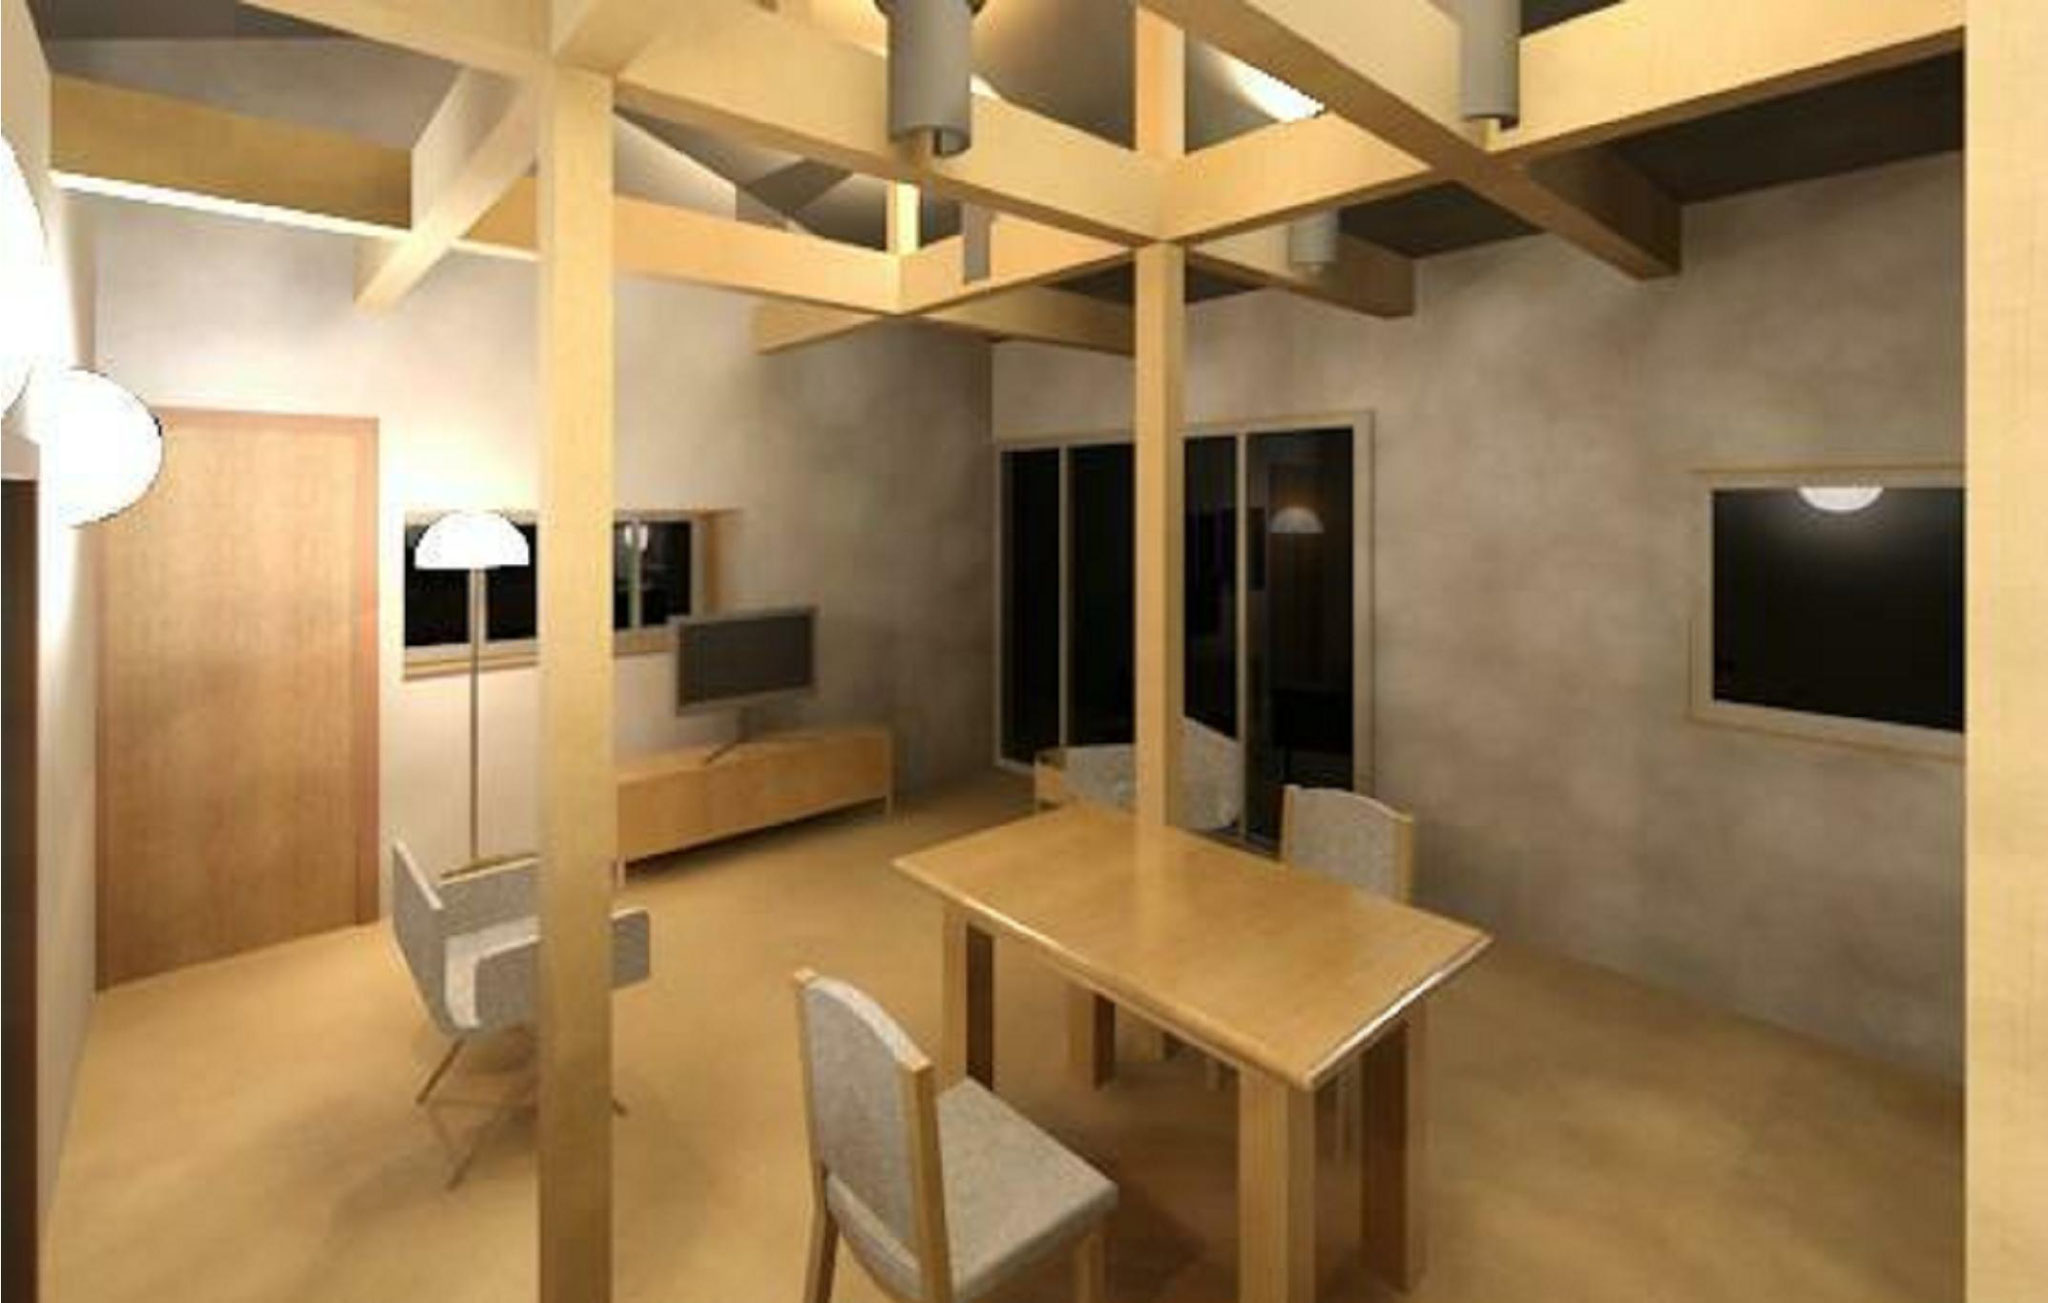 DK-h project  Dining plan